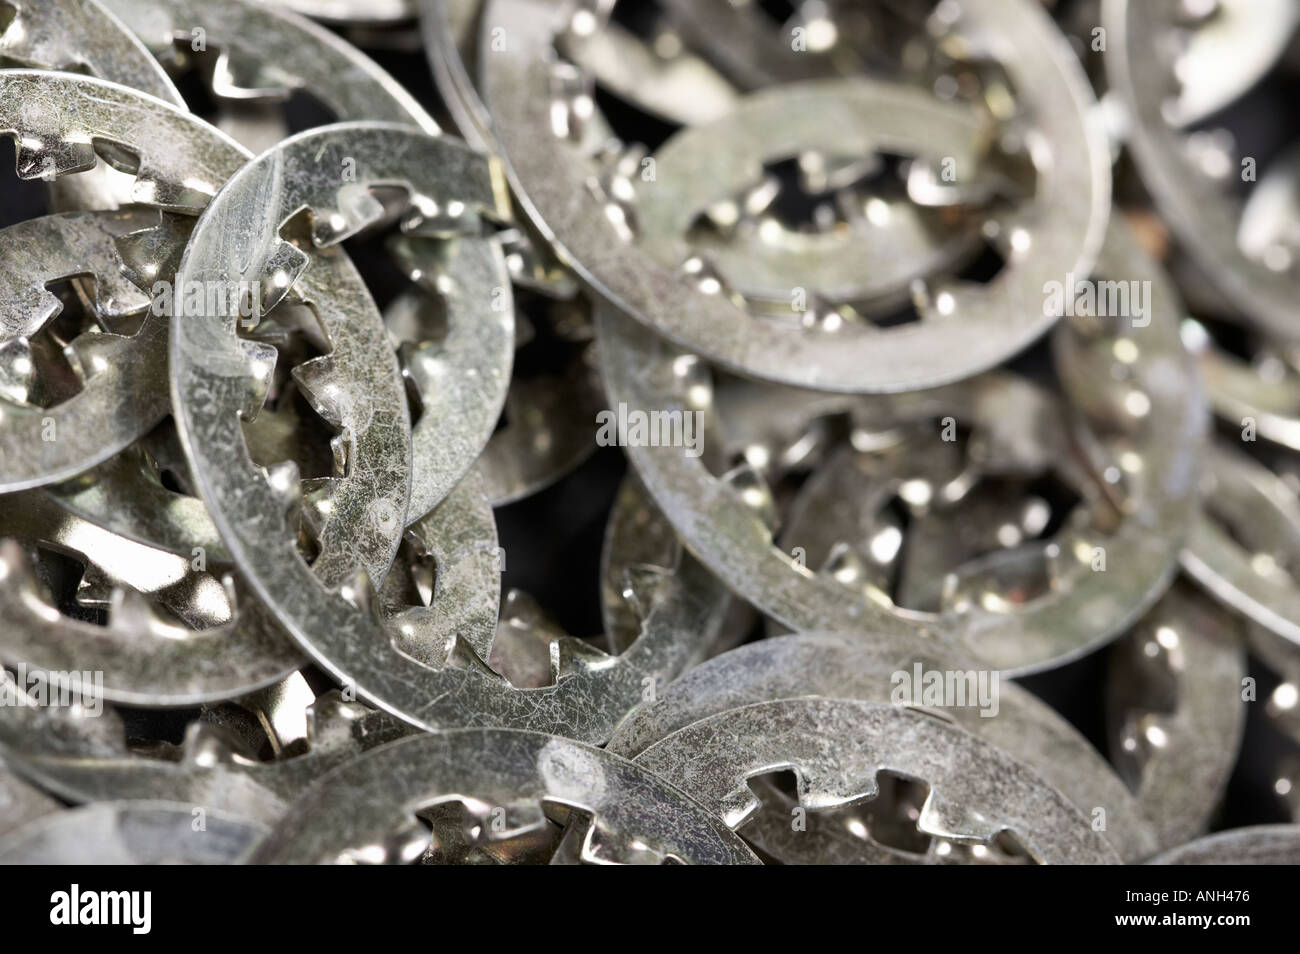 Metal washers closeup Stock Photo